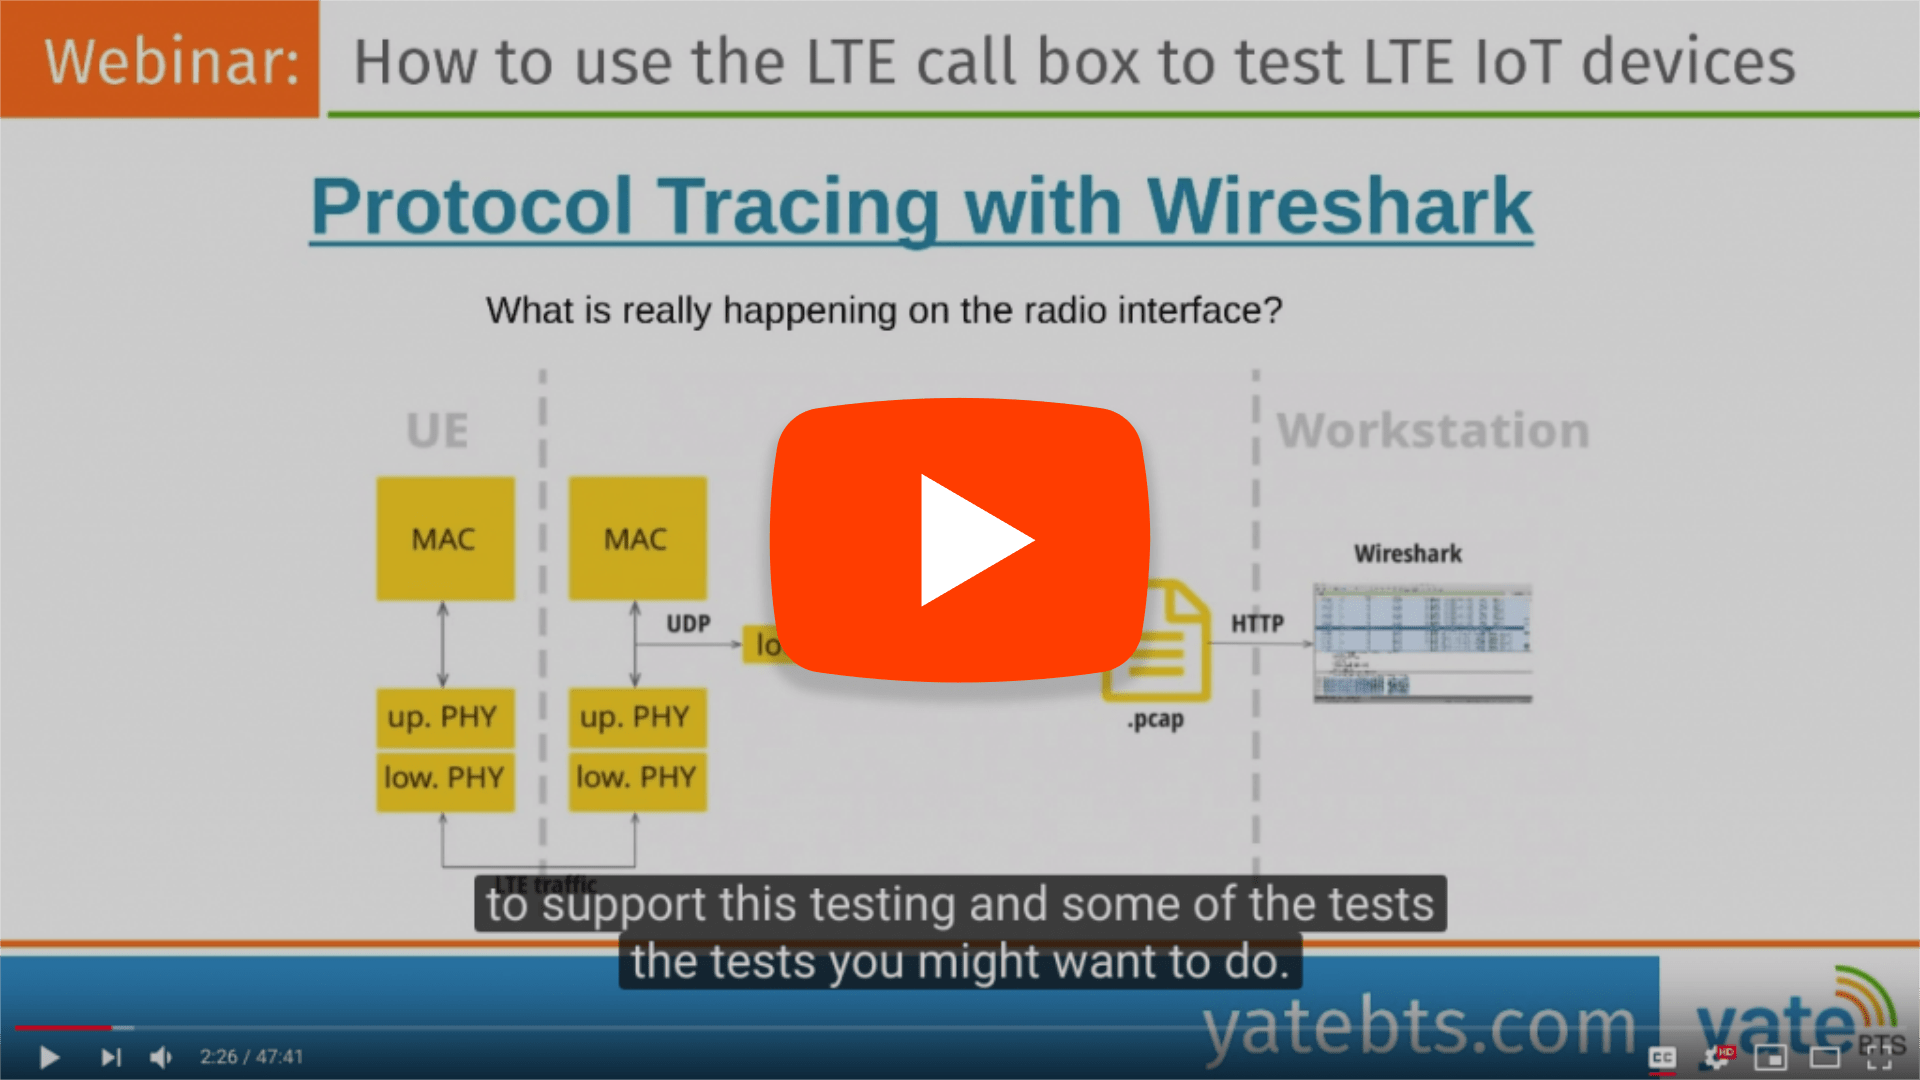 IoT device testing webinar using the LTE Callbox. Real scenarios and IoT testing demo. 1